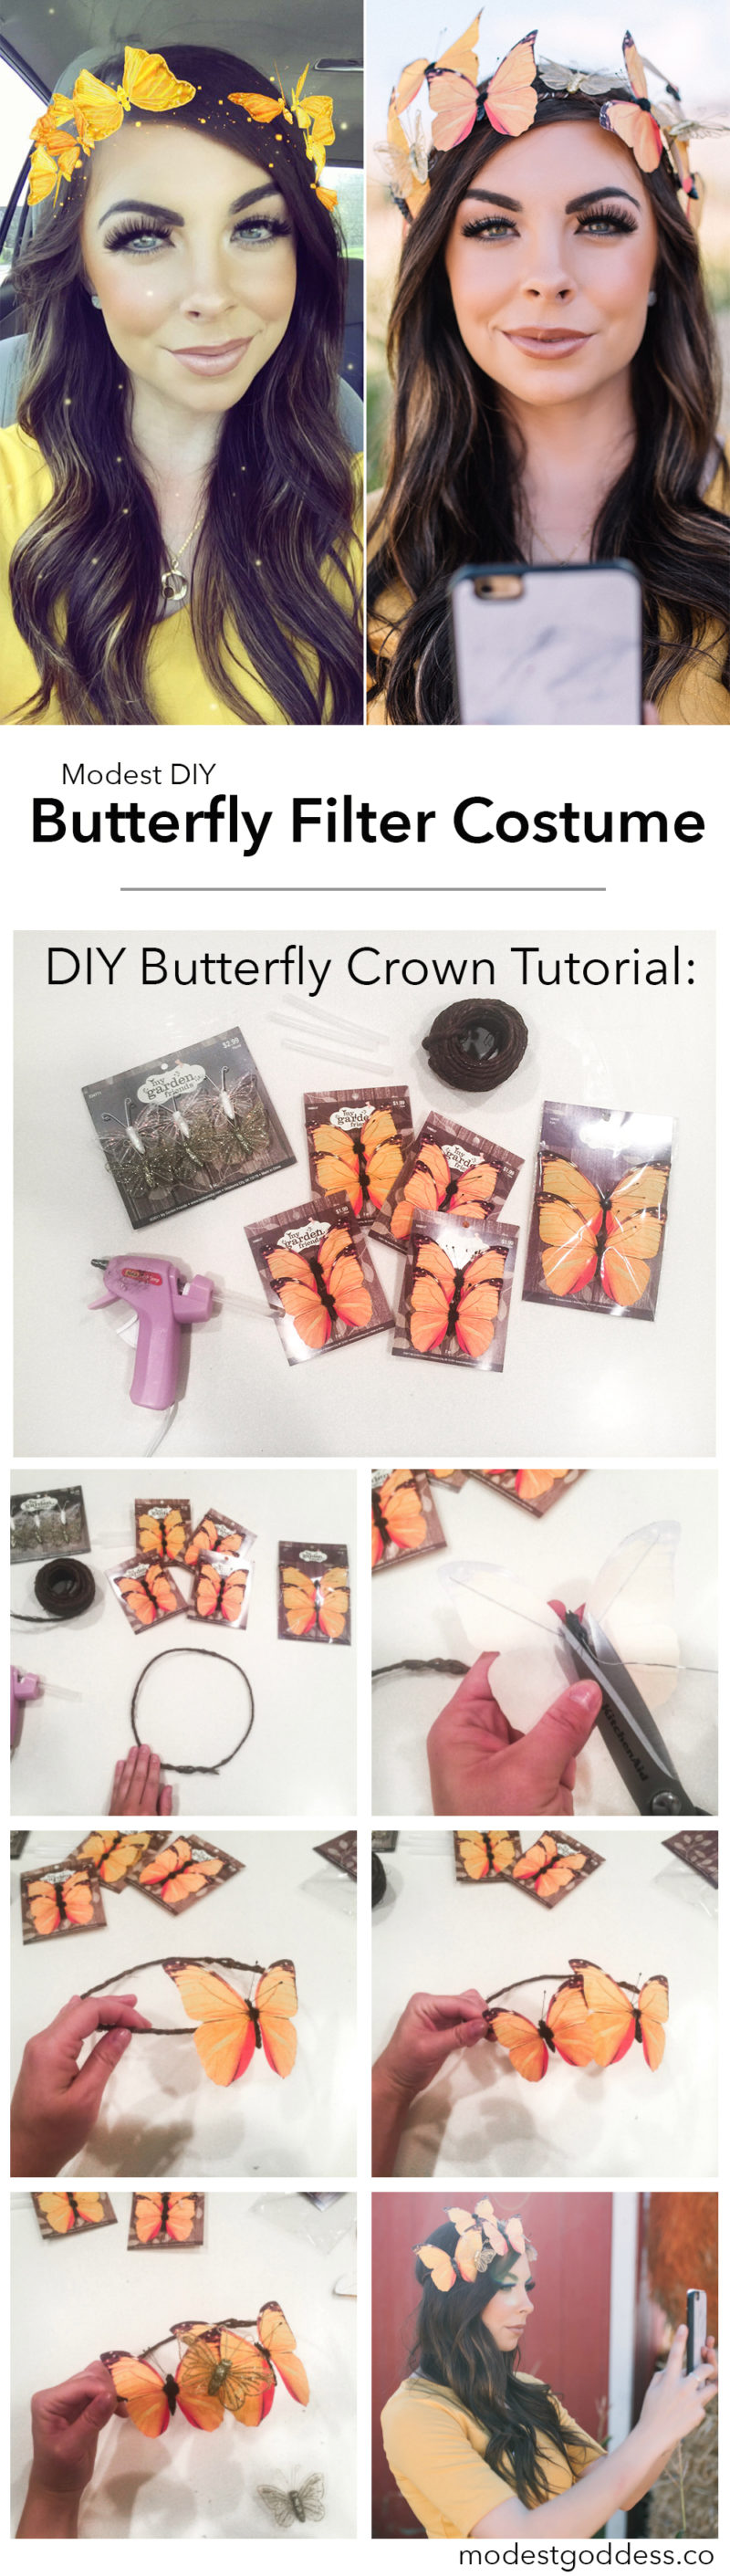 Modest Halloween Costume Ideas: Snachat Filter Costume, DIY Butterfly Filter Costume & Tutorial